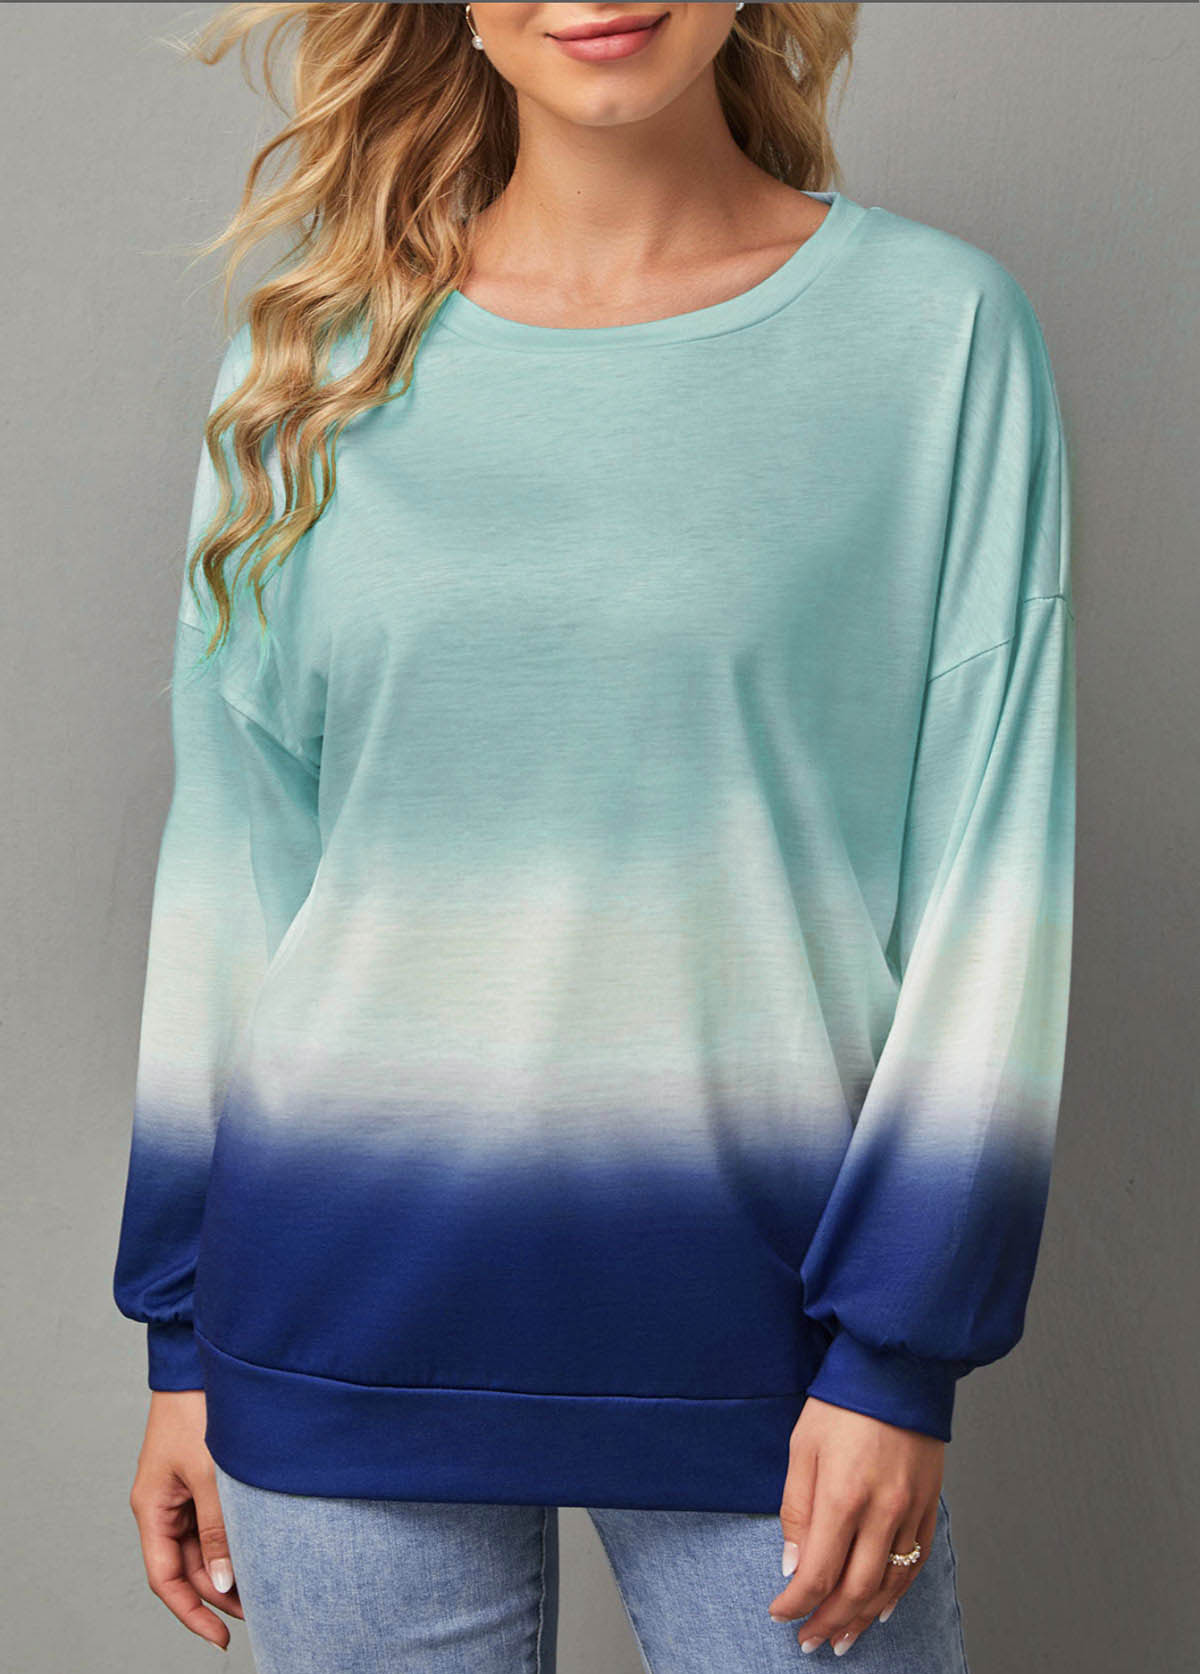 Ombre Print Round Neck Long Sleeve T Shirt